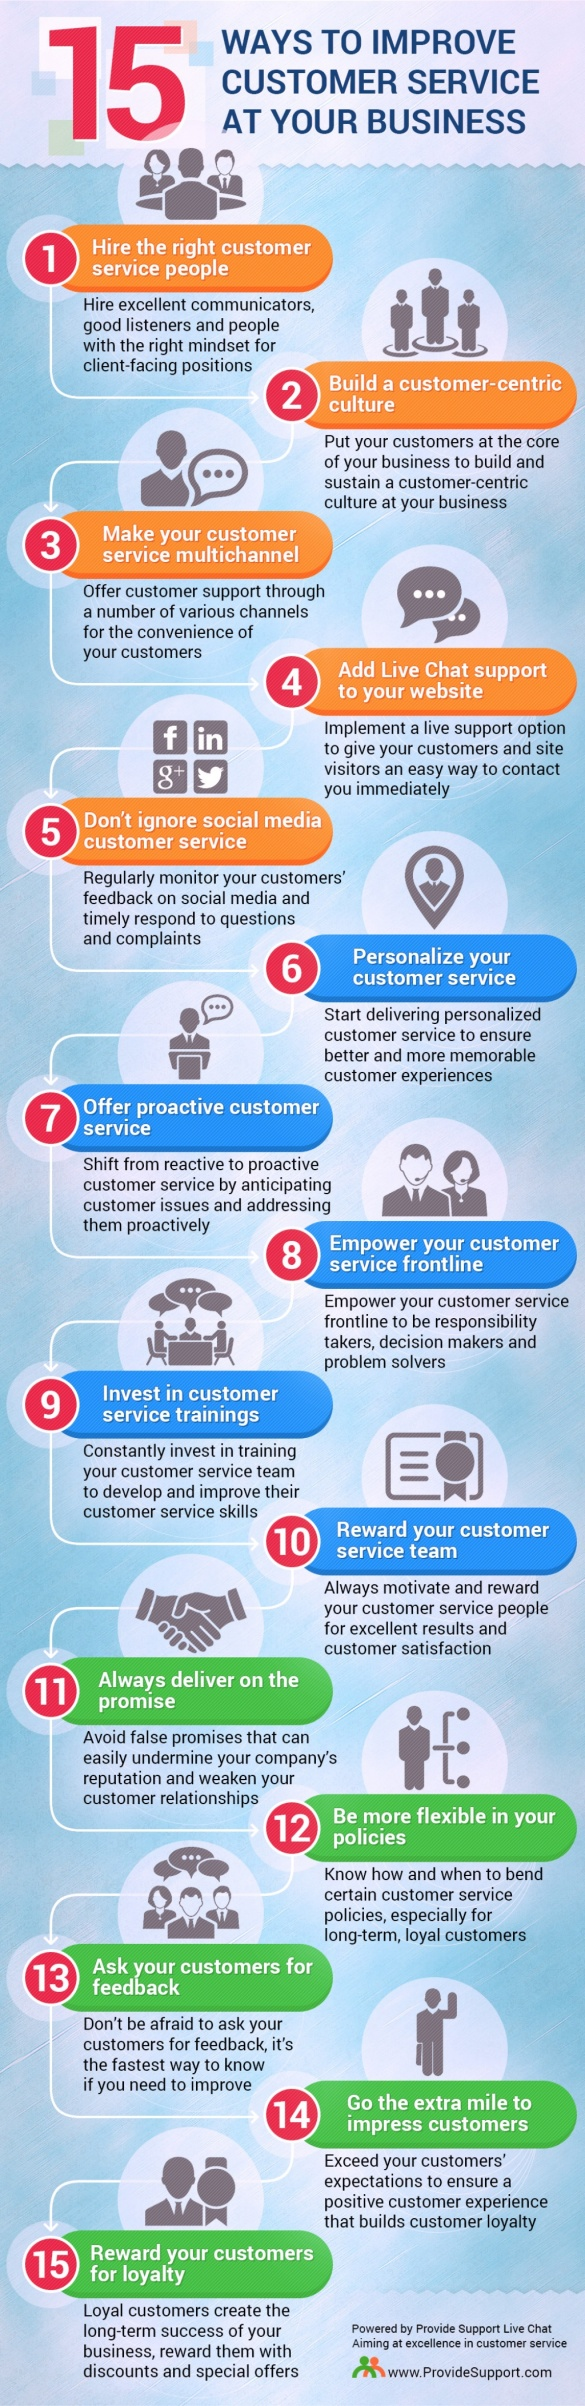 15-ways-to-improve-customer-service-at-your-business-1-1024